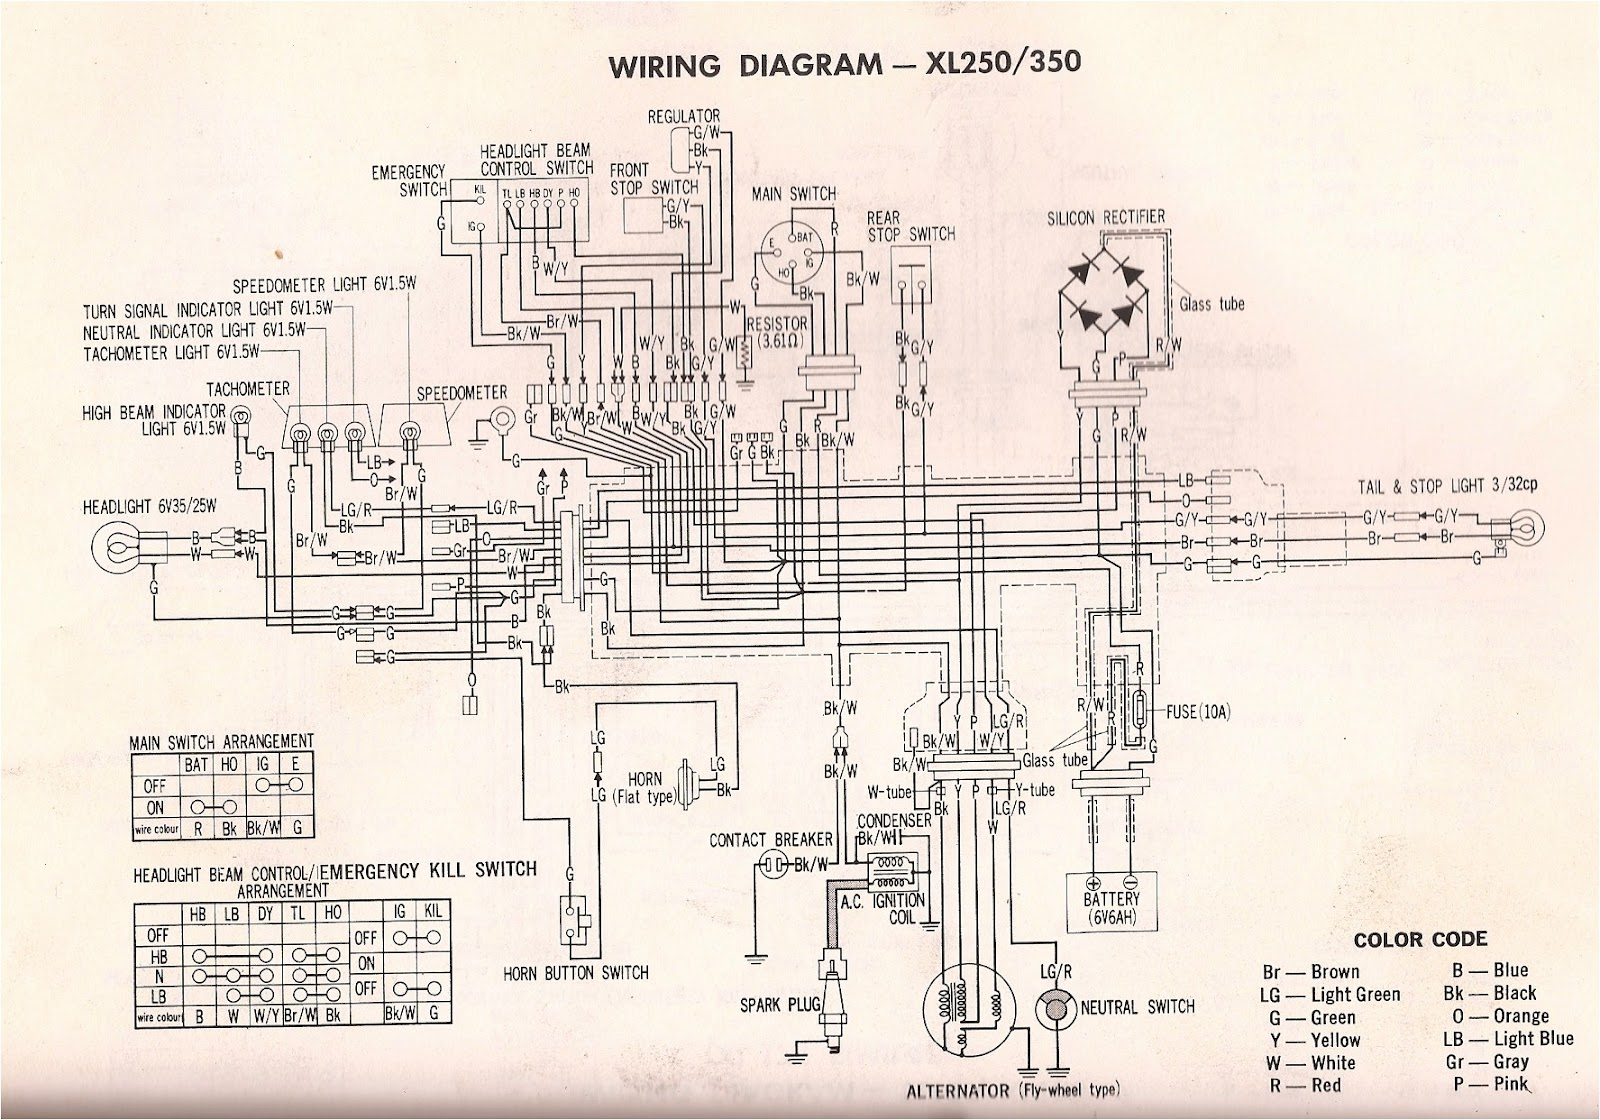 xl250 wiring diagram electronic wiring diagrams snatch block diagrams xl250 wiring  diagram